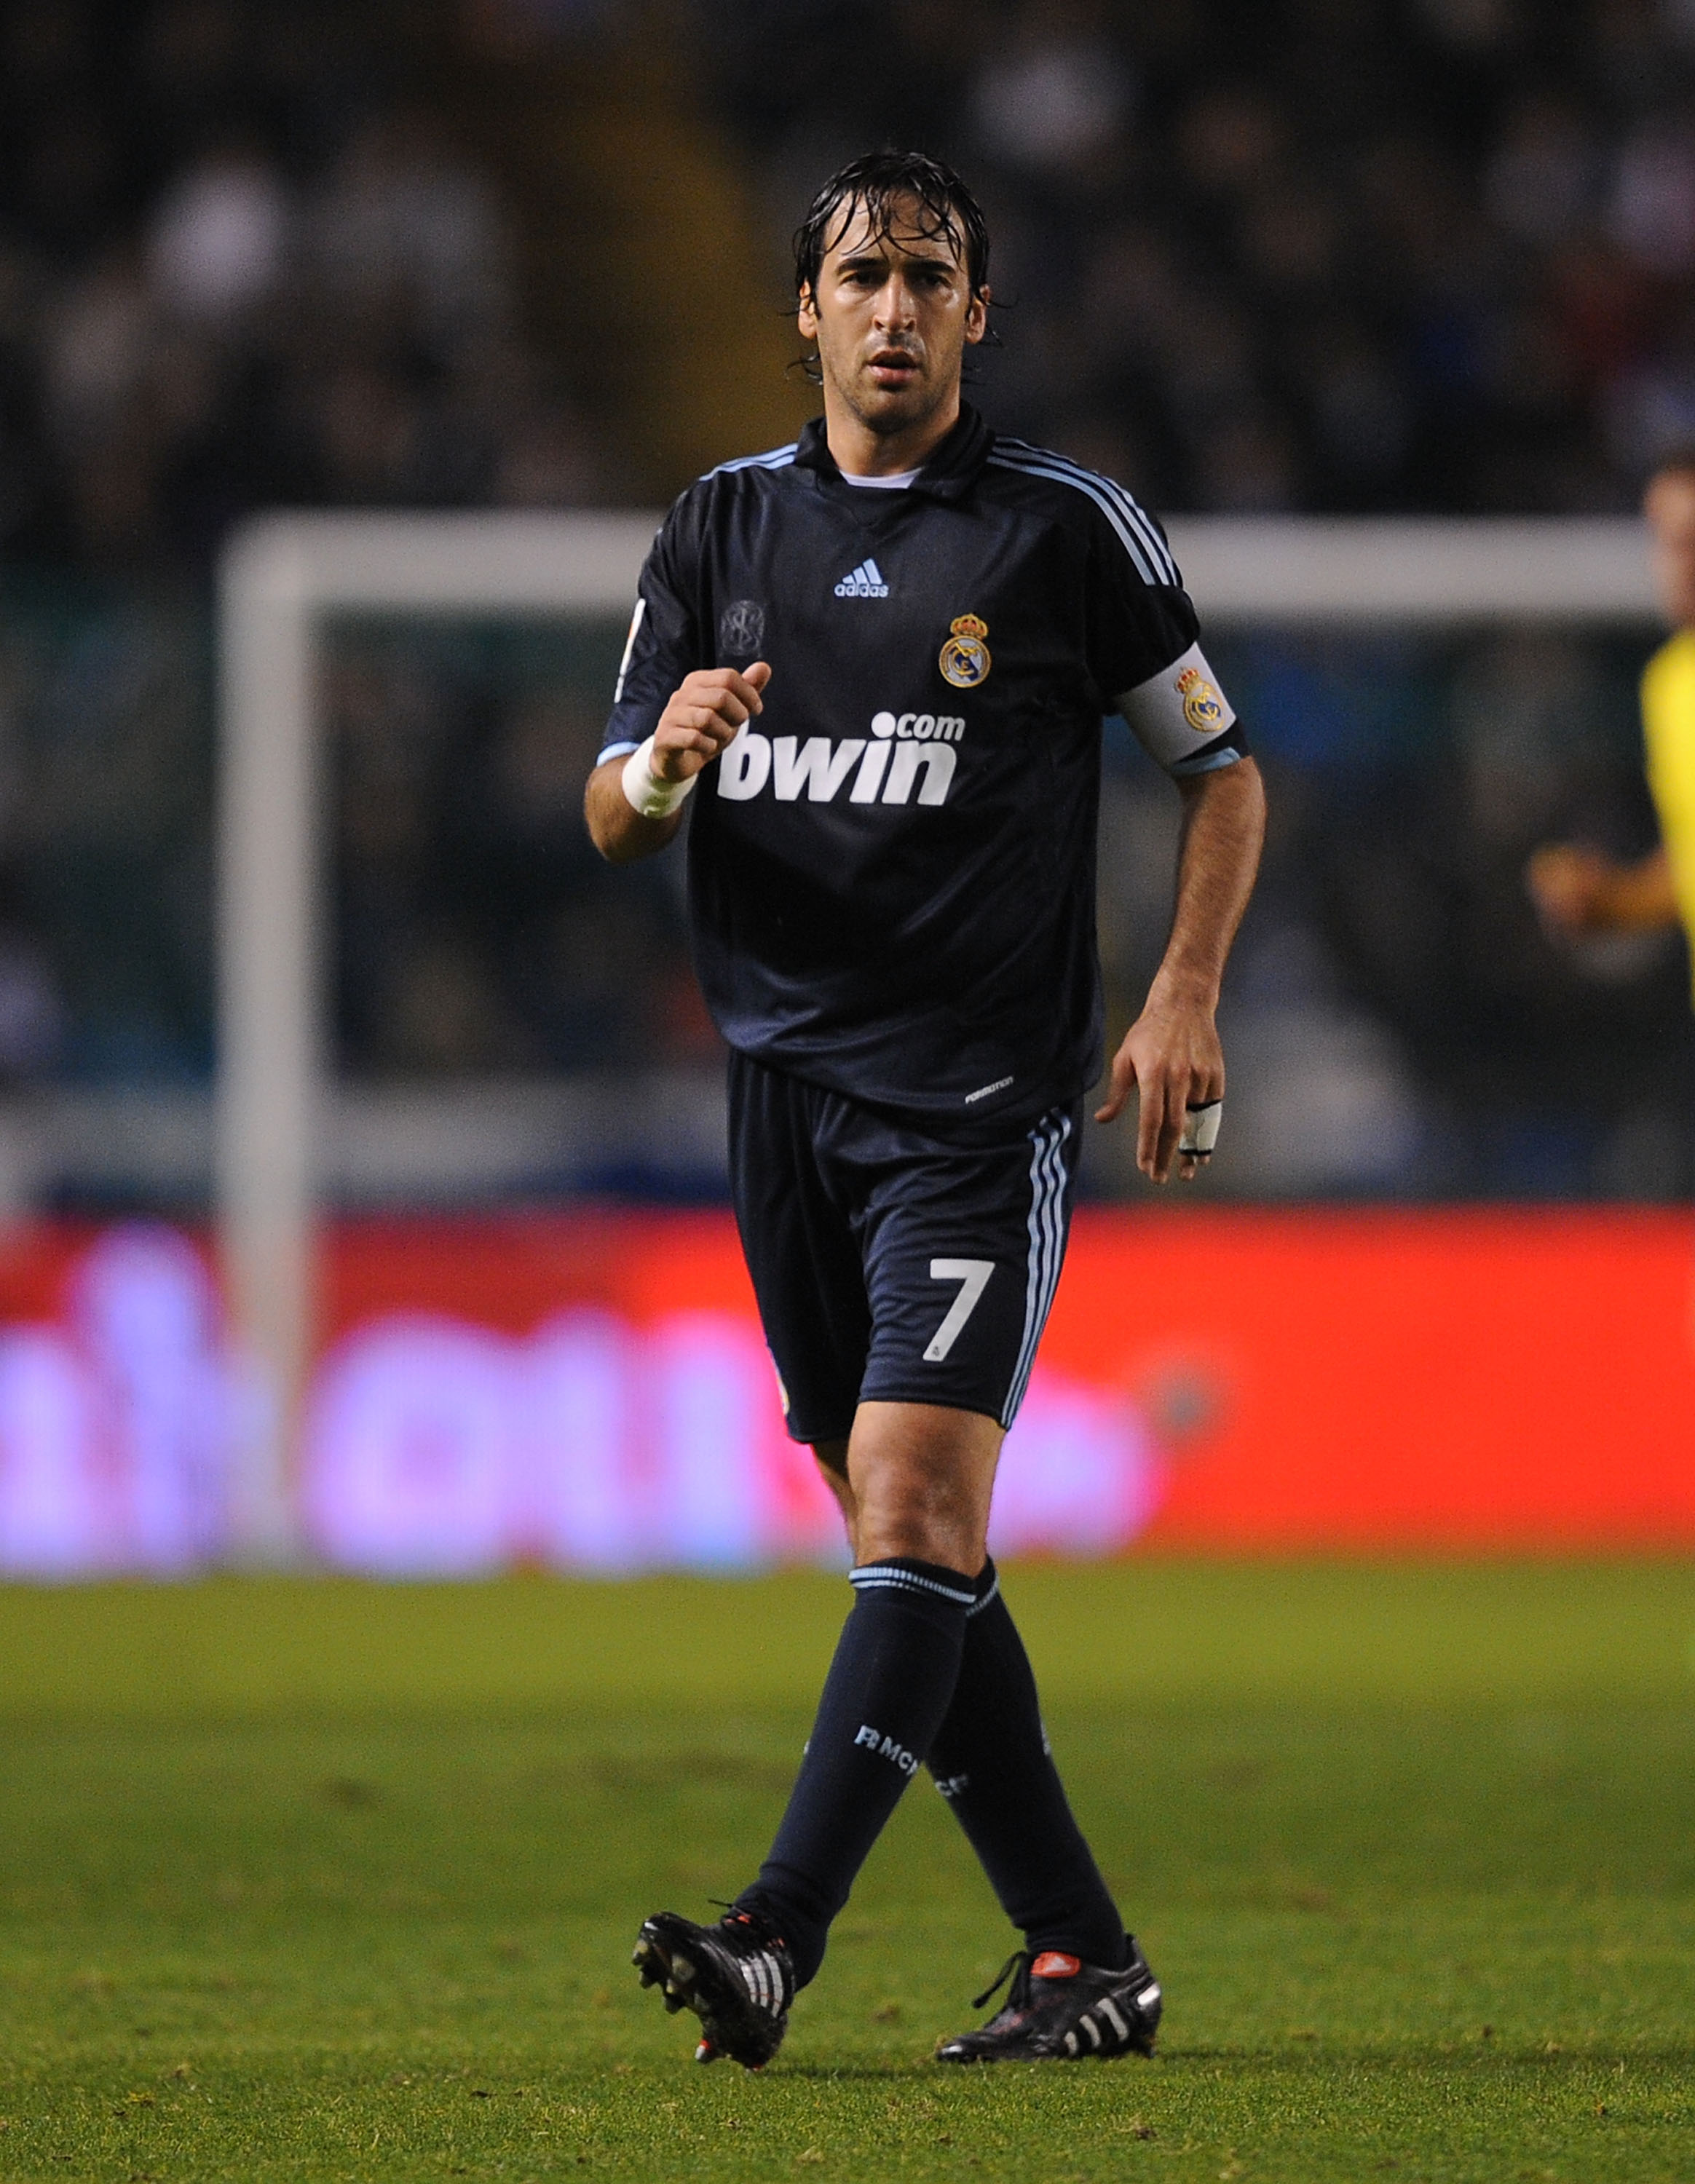 LA CORUNA, SPAIN - JANUARY 30: Raul Gonzalez of Real Madrid during the La Liga match between Real Madrid and Deportivo La Coruna at the Riazor Stadium on January 30, 2010 in La Coruna, Spain.  (Photo by Denis Doyle/Getty Images)